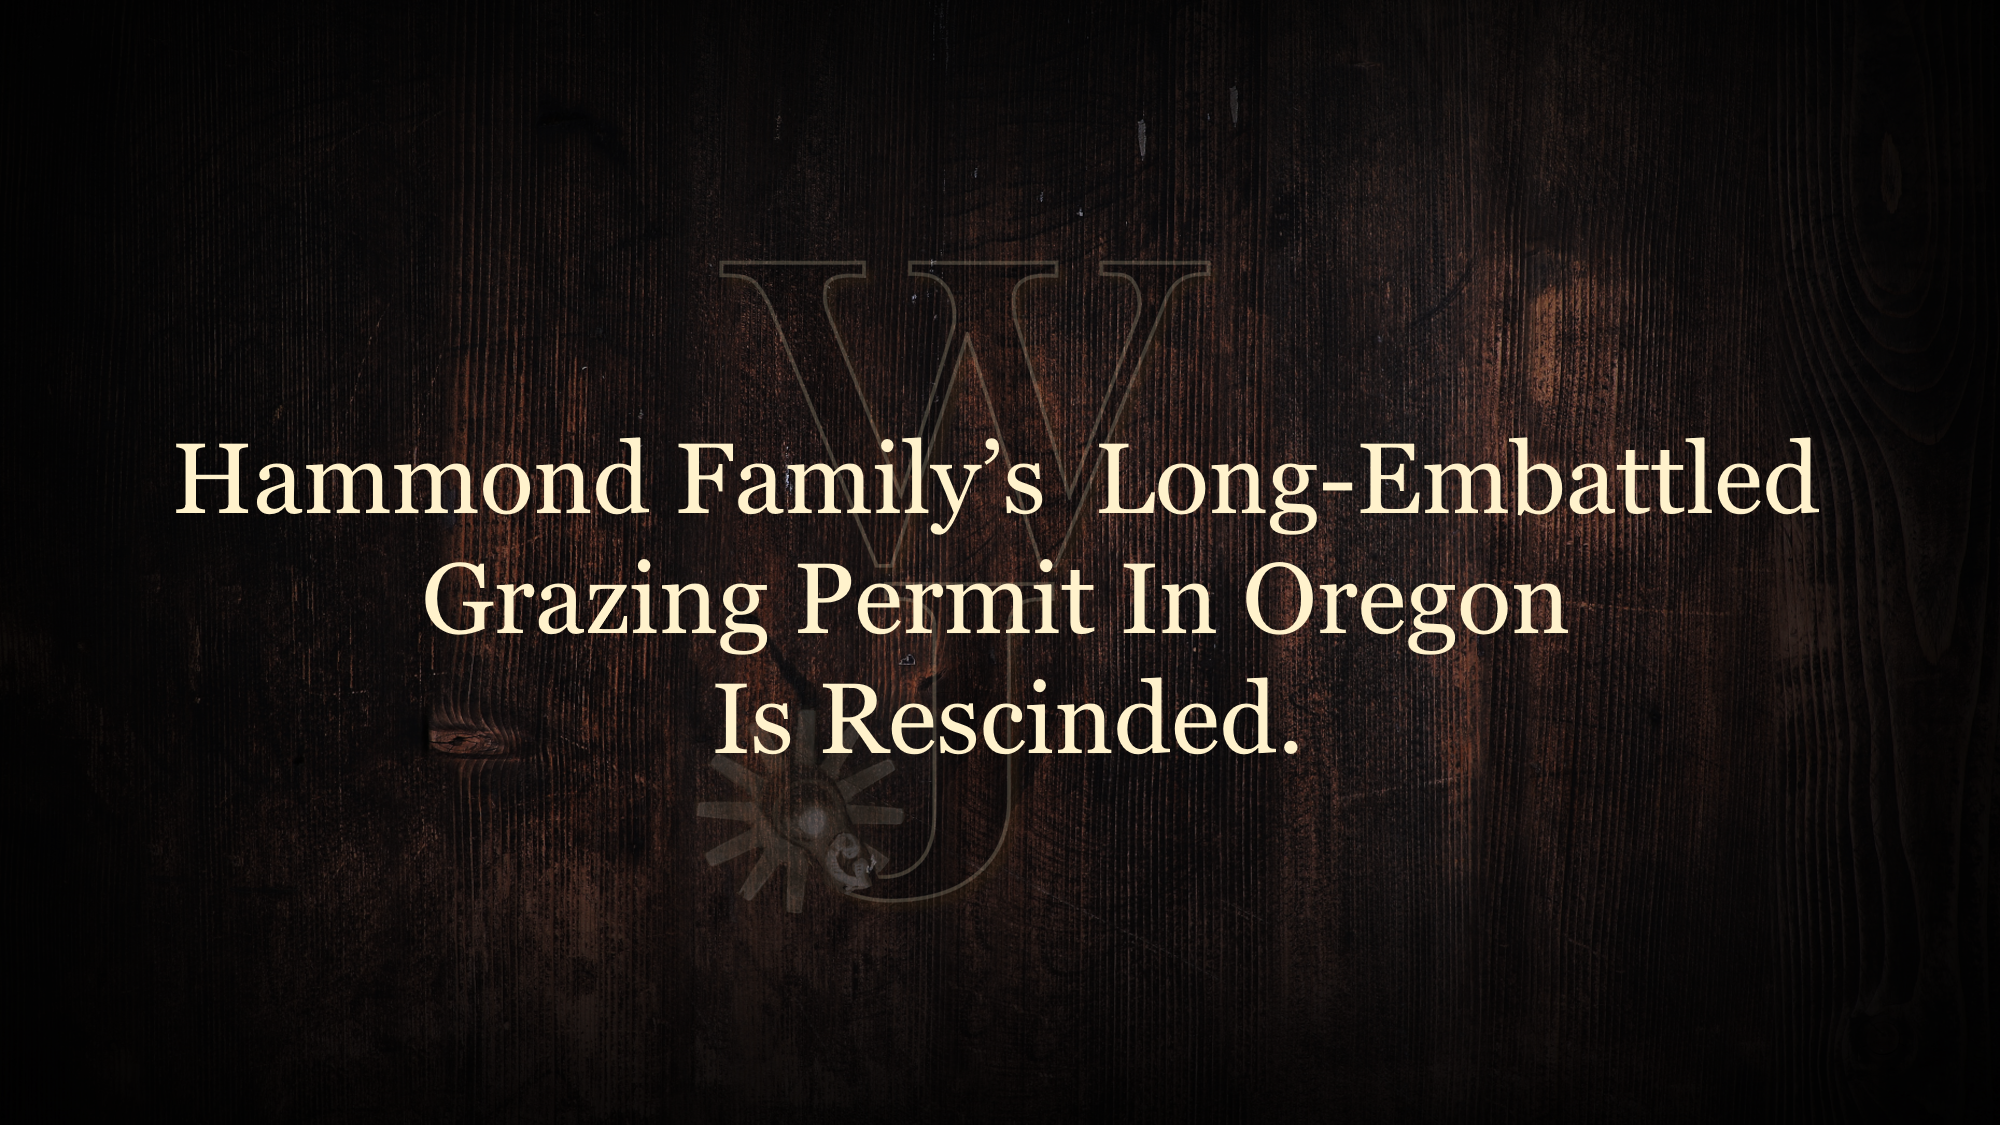 Hammond Family's Grazing Permit Is Recinded